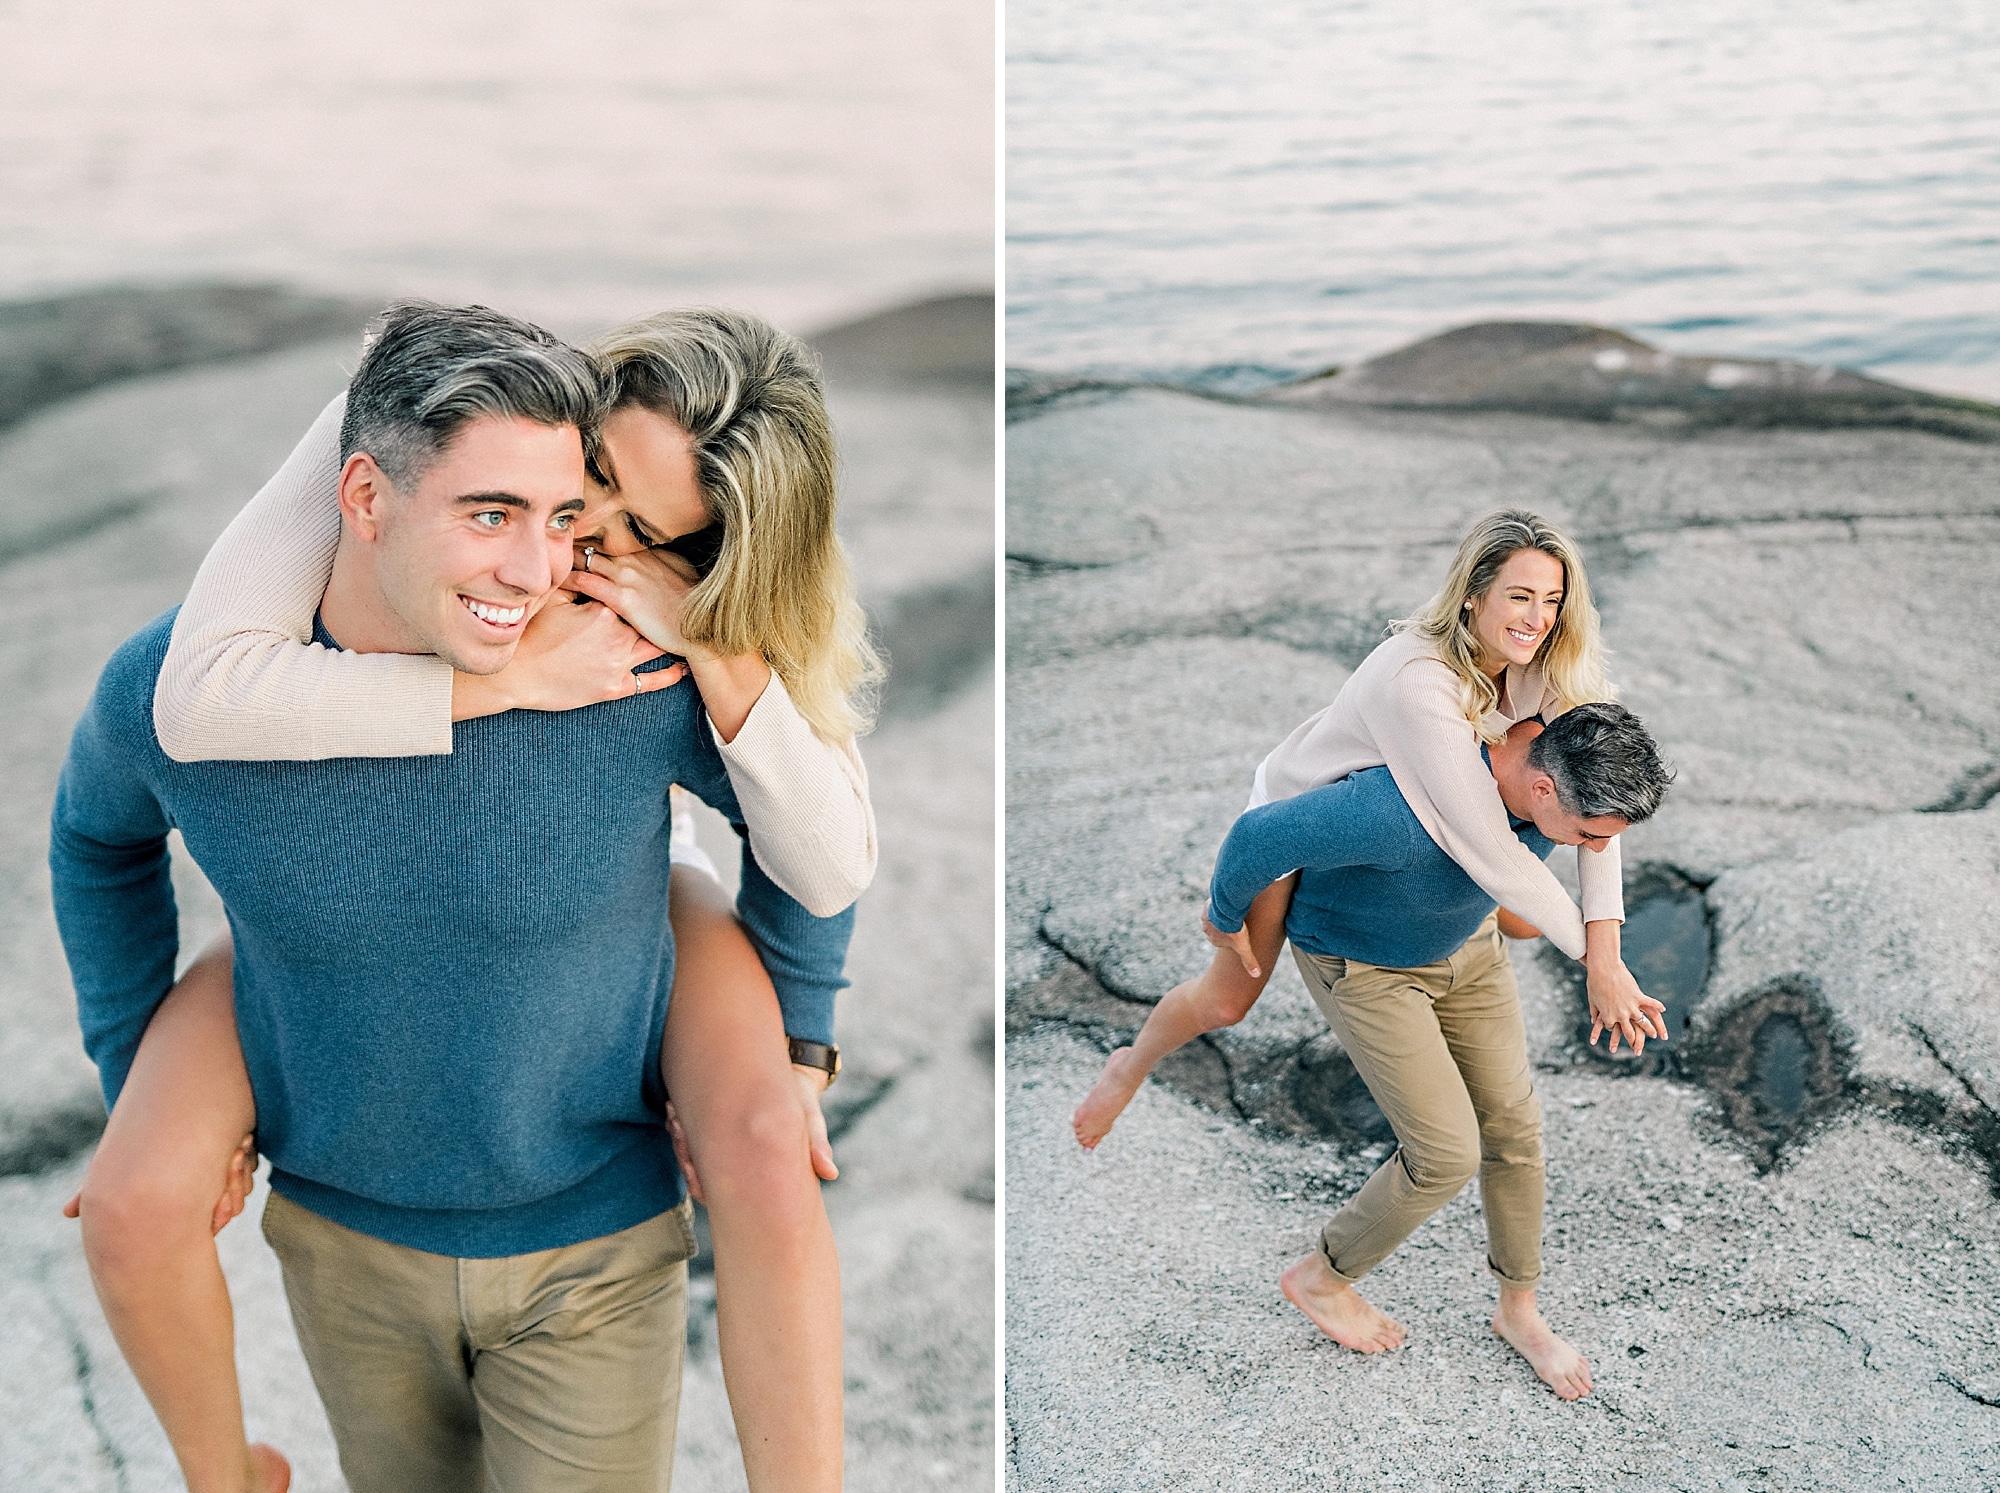 playful couple having piggy back ride on the rocks by the ocean during photoshoot